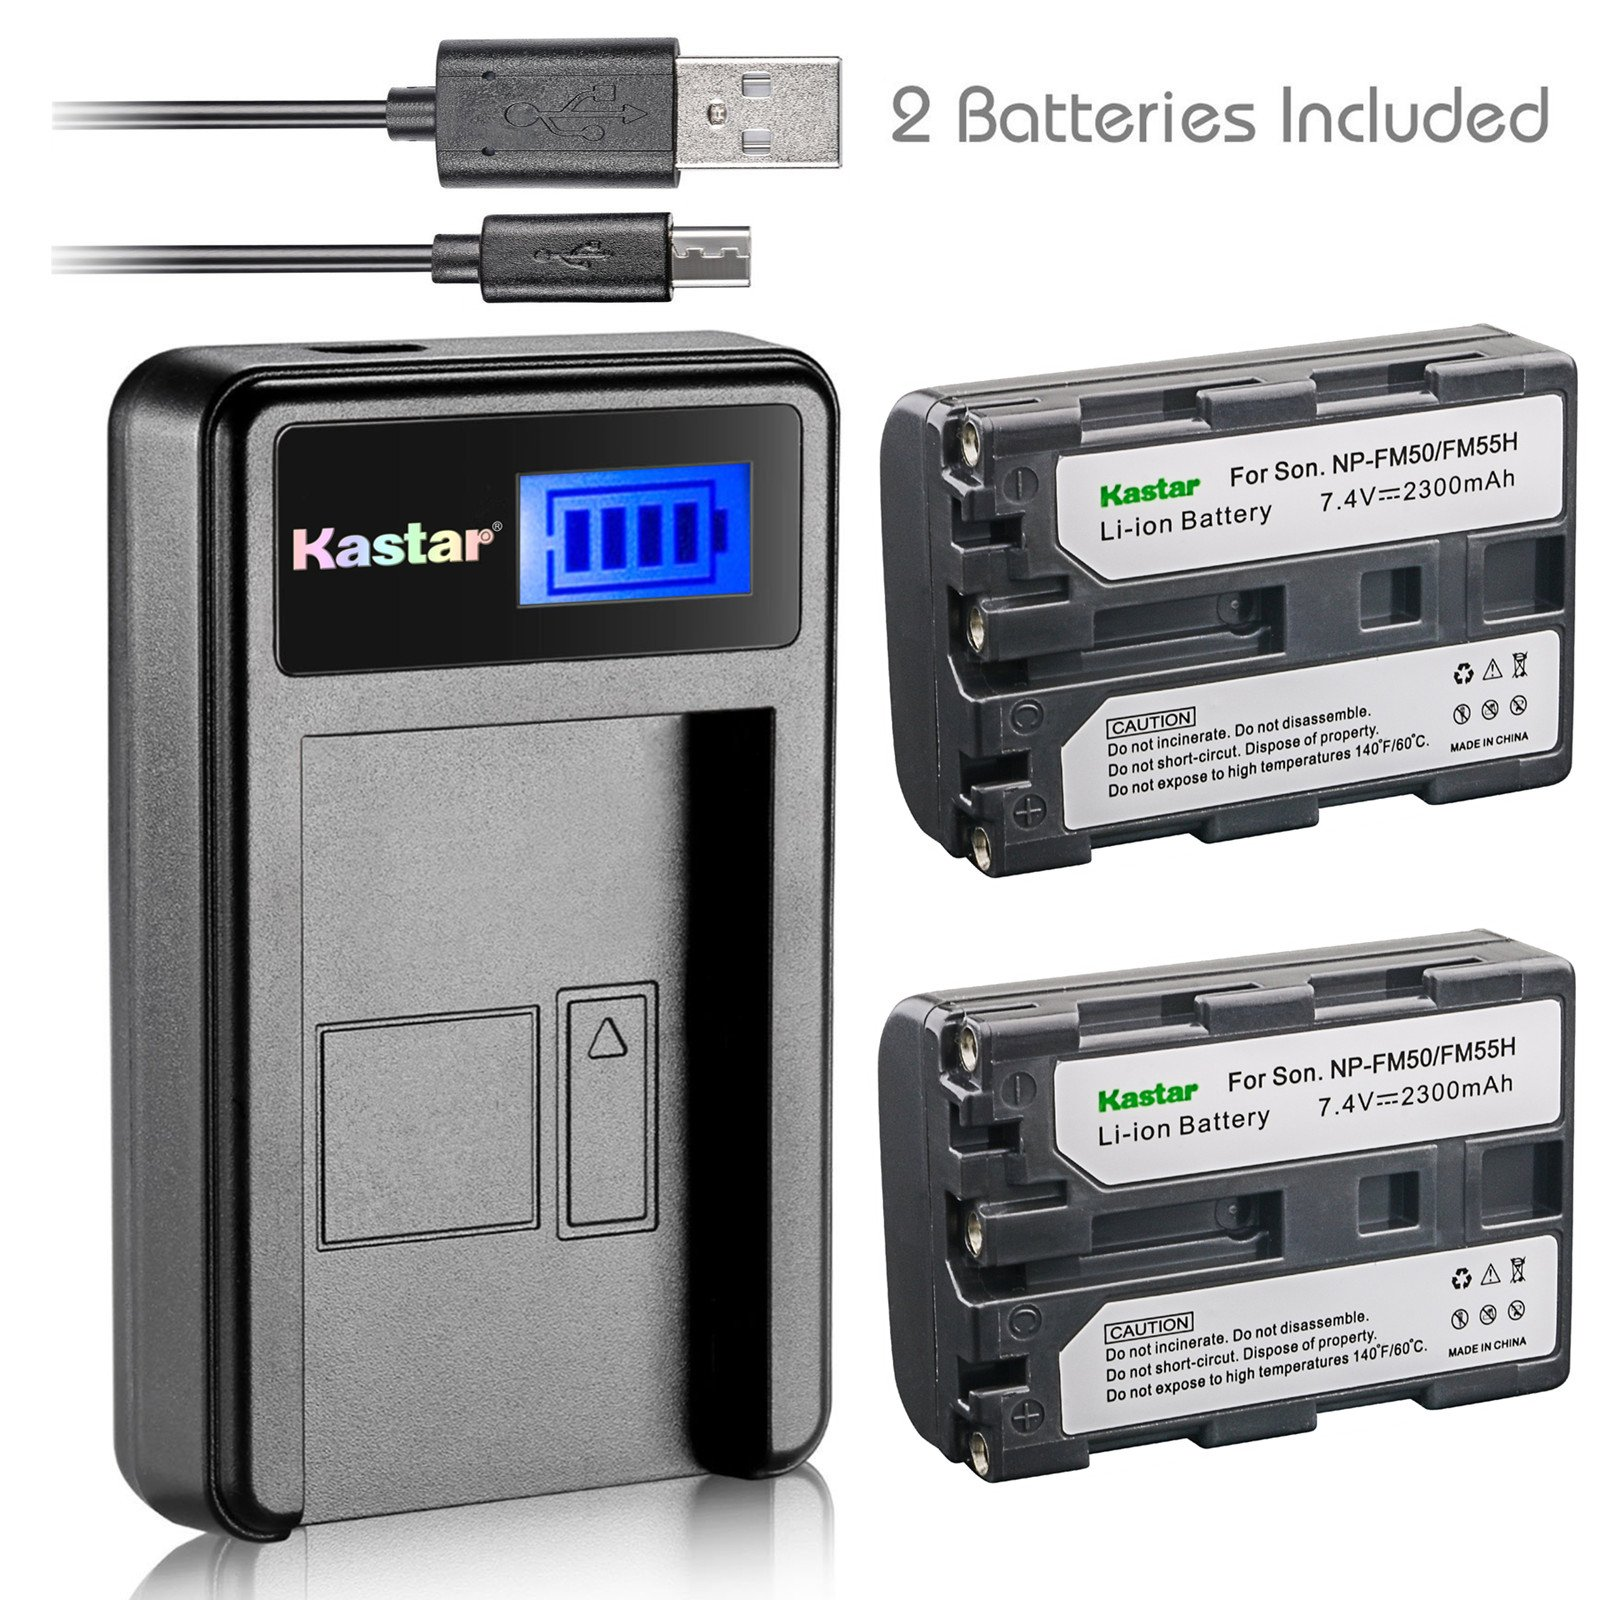 Kastar Battery (X2) & LCD Slim USB Charger for Sony NP-FM50 NP-FM55H & HC1 TRV280 TRV350 TRV250 TRV19 TRV22 TRV27 TRV33 TRV460 TRV140 TRV17 TRV340 TRV38 TRV480 TRV260 TRV138 TRV608 DVD101 DVD201 D1000